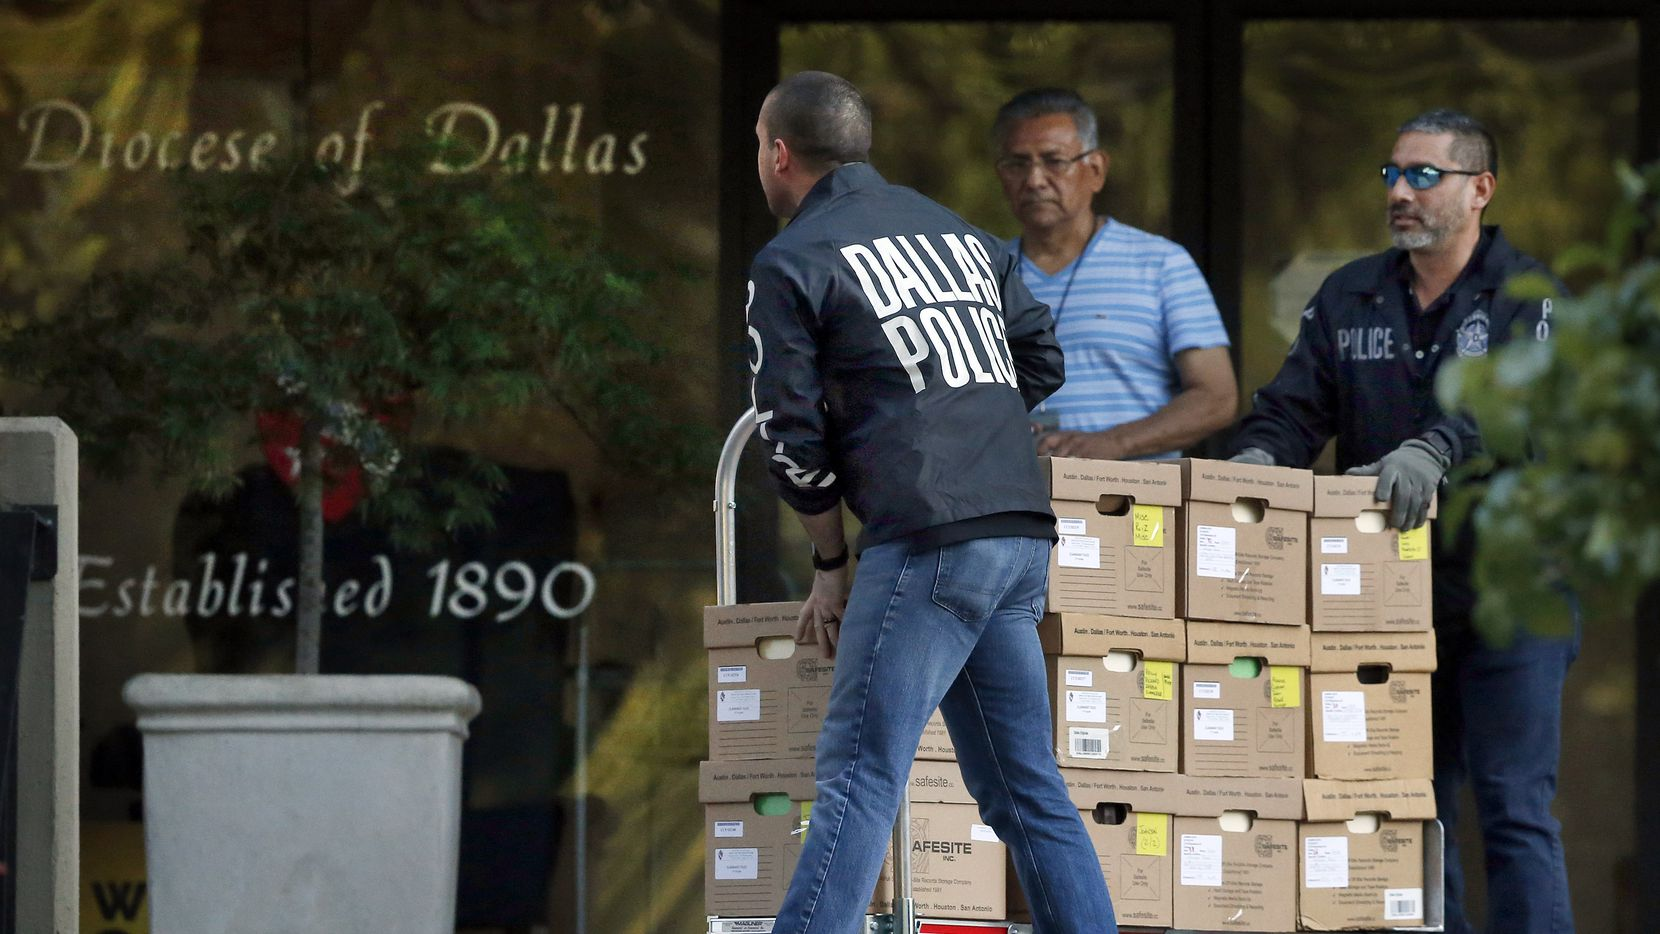 Dallas police officials carted out boxes during a raid on the Catholic Diocese of Dallas on May 15, 2019.